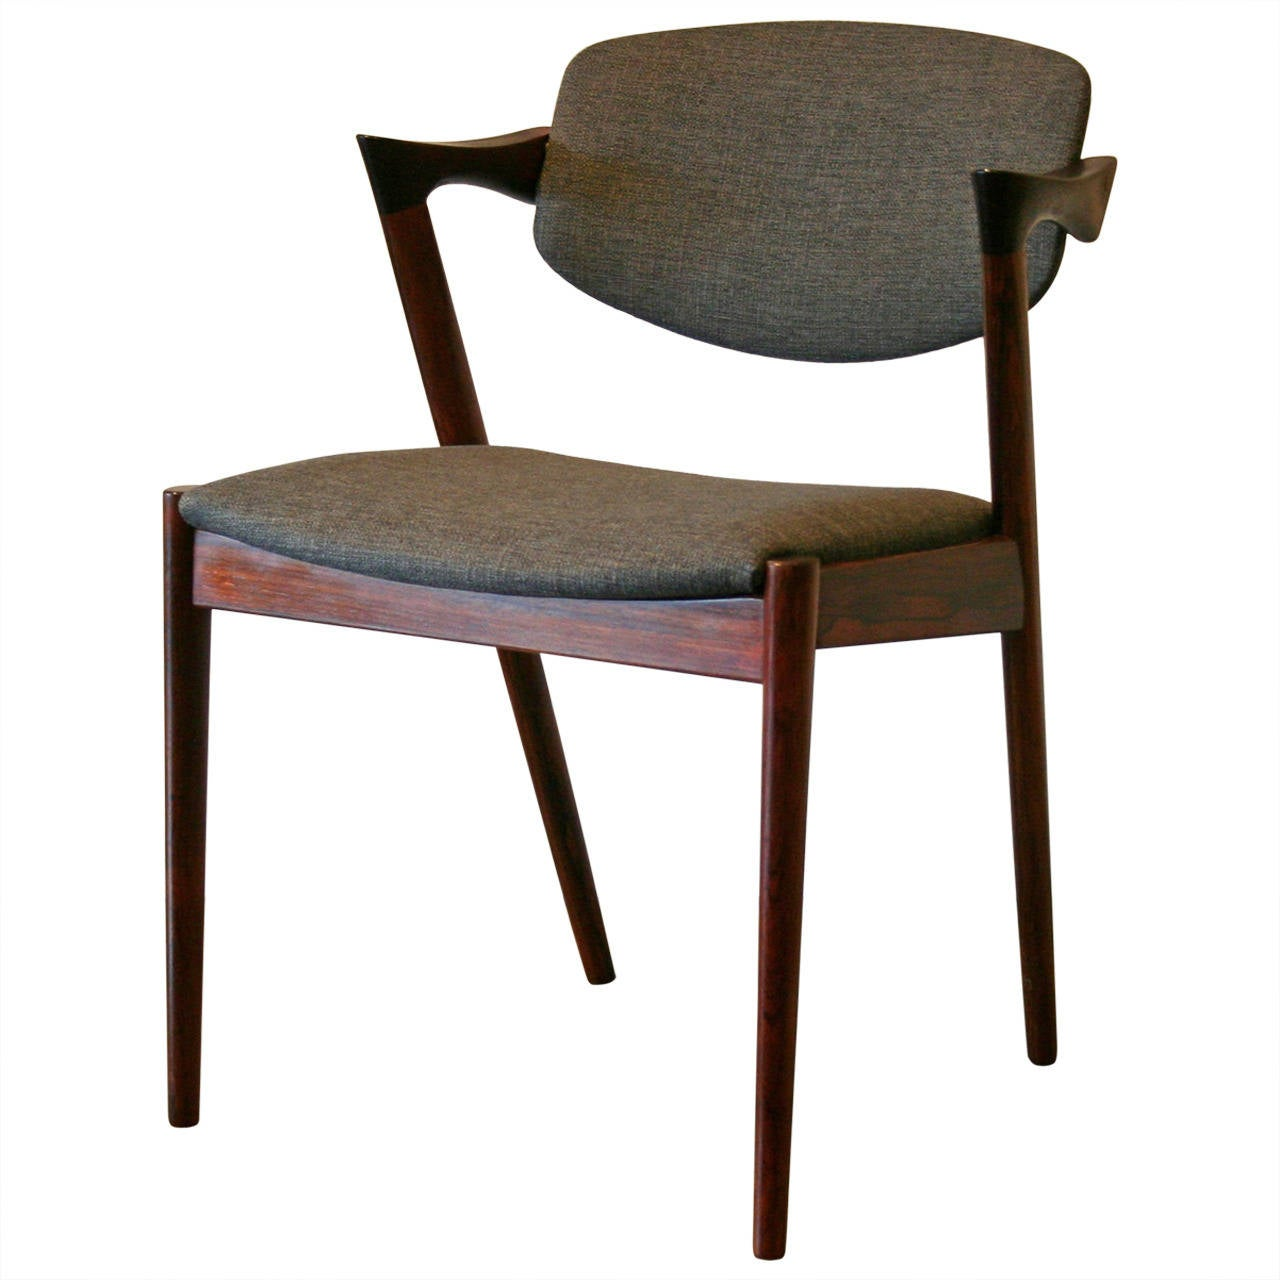 Danish Rosewood Dining Chairs By Kai Kristiansen At 1stdibs